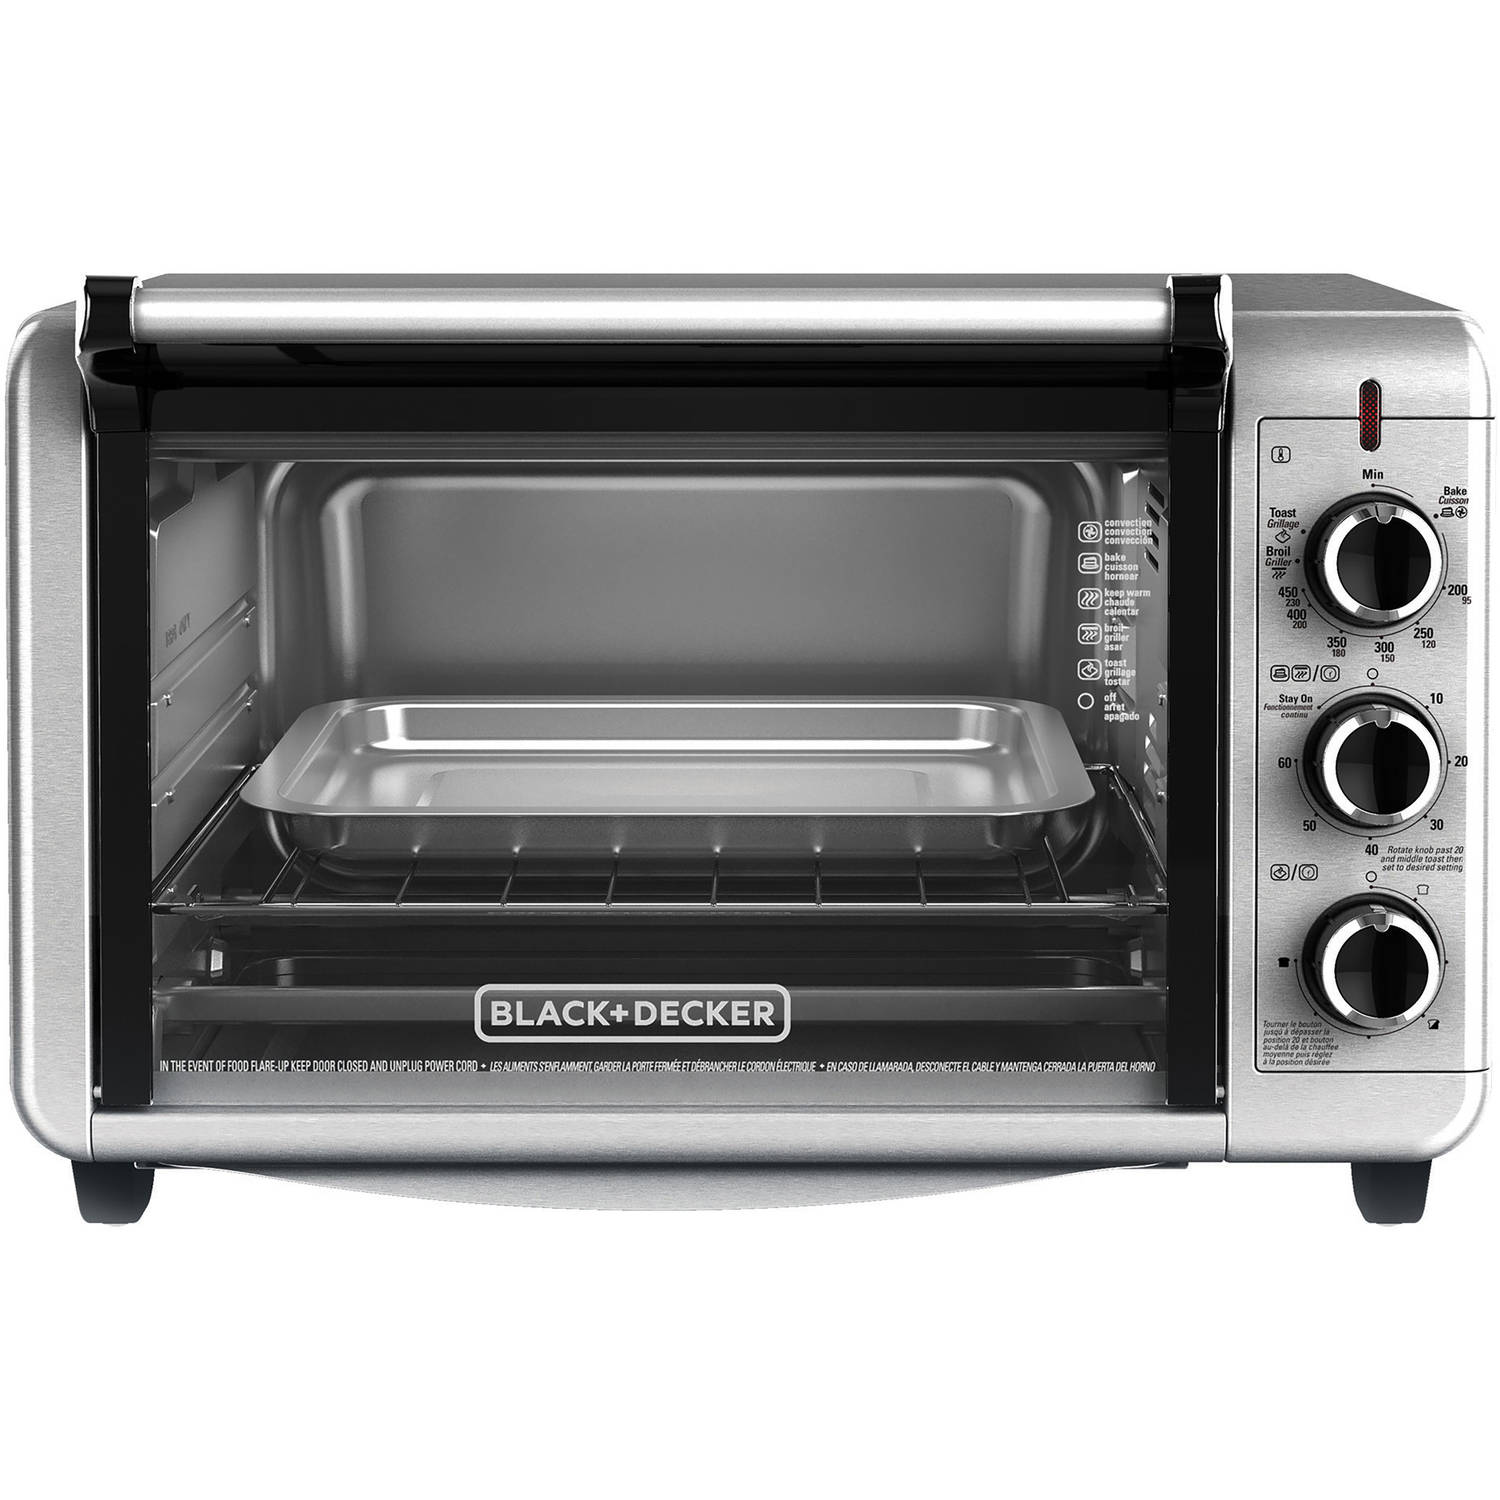 blackdecker dining in countertop convection oven to3210ssd - Convection Ovens